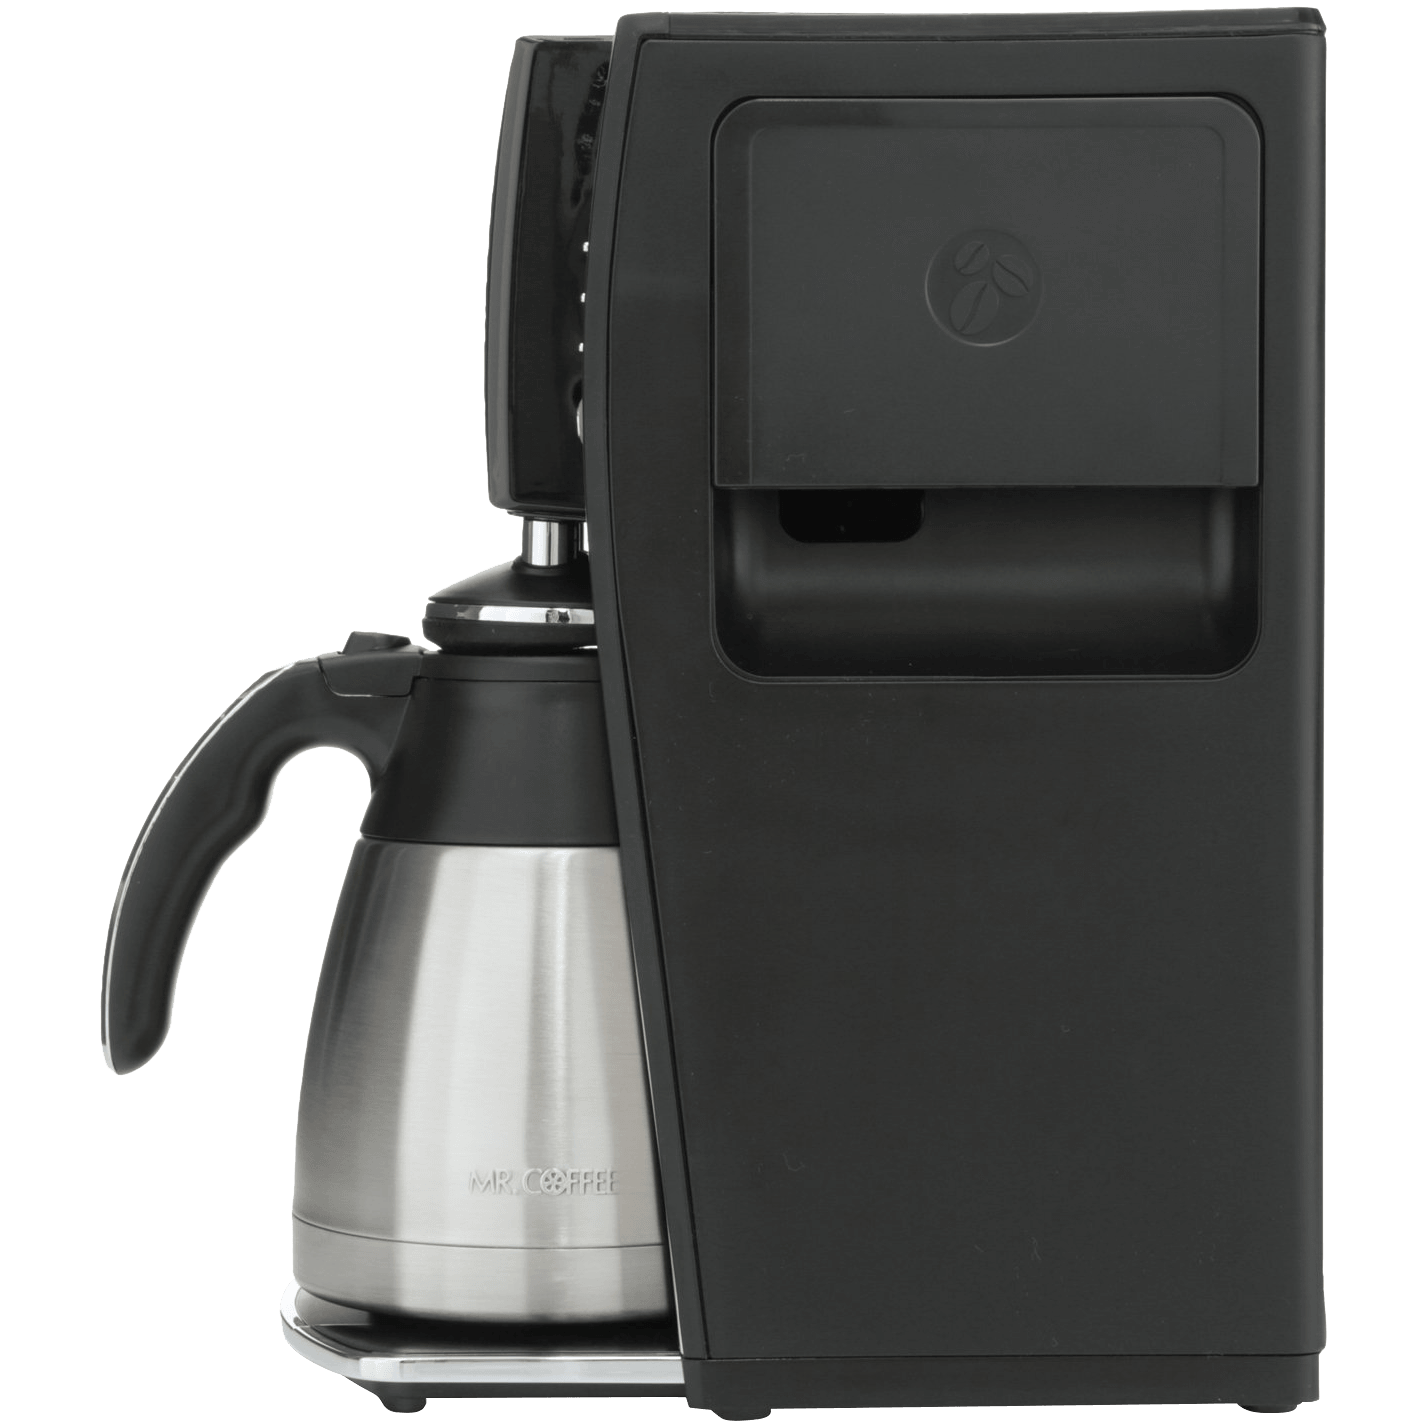 Mr Coffee Maker Cleaning Instructions : Mr. Coffee 10-Cup Thermal Carafe Coffee Maker (Refurbished)